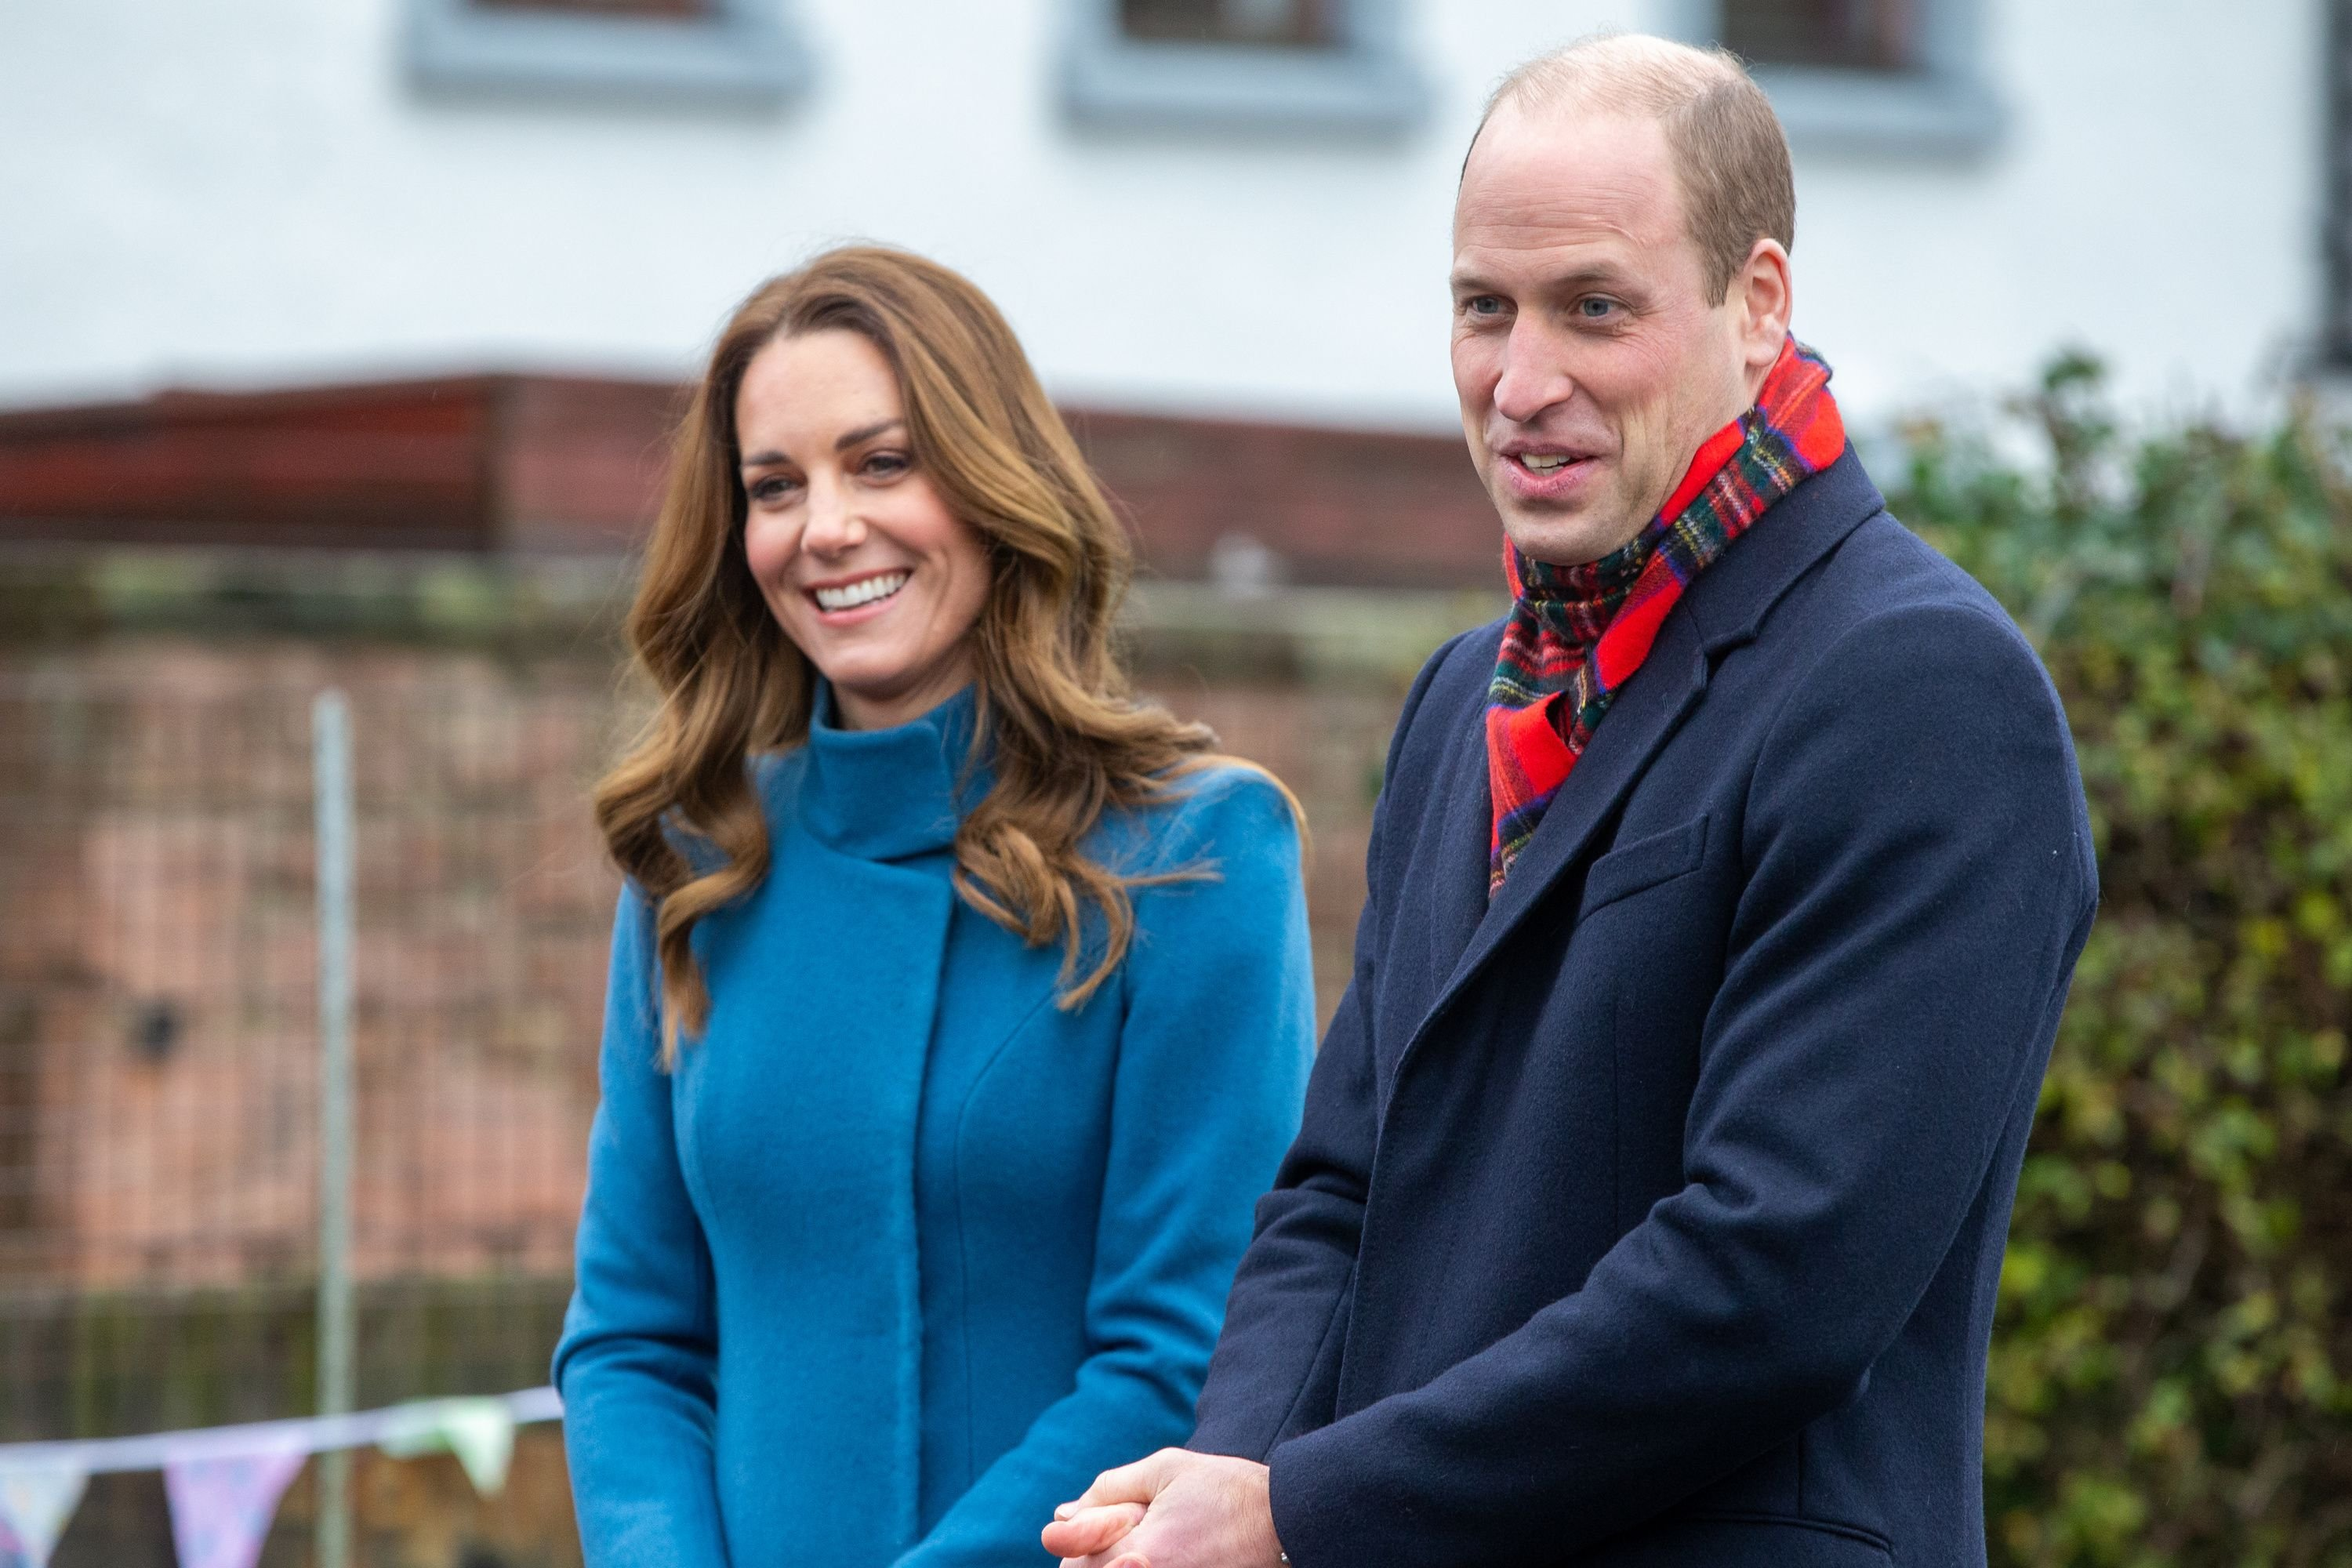 Prince William and Kate Middleton meet staff and pupils from Holy Trinity Church of England First School during their visits across the UK on December 7, 2020 | Photo: Getty Images